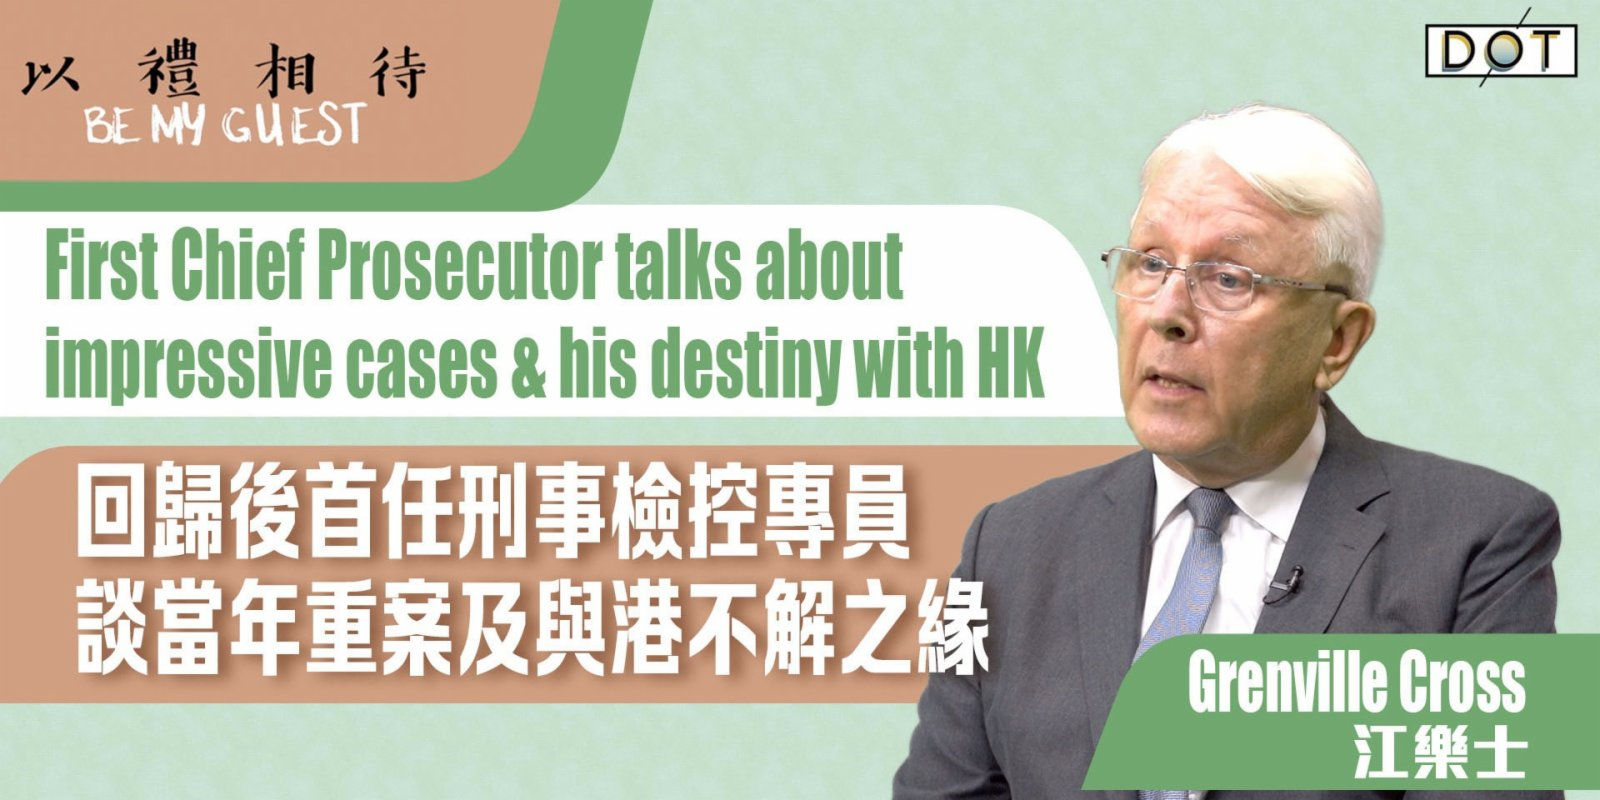 Be My Guest | Grenville Cross: First Chief Prosecutor talks about impressive cases & his destiny with HK